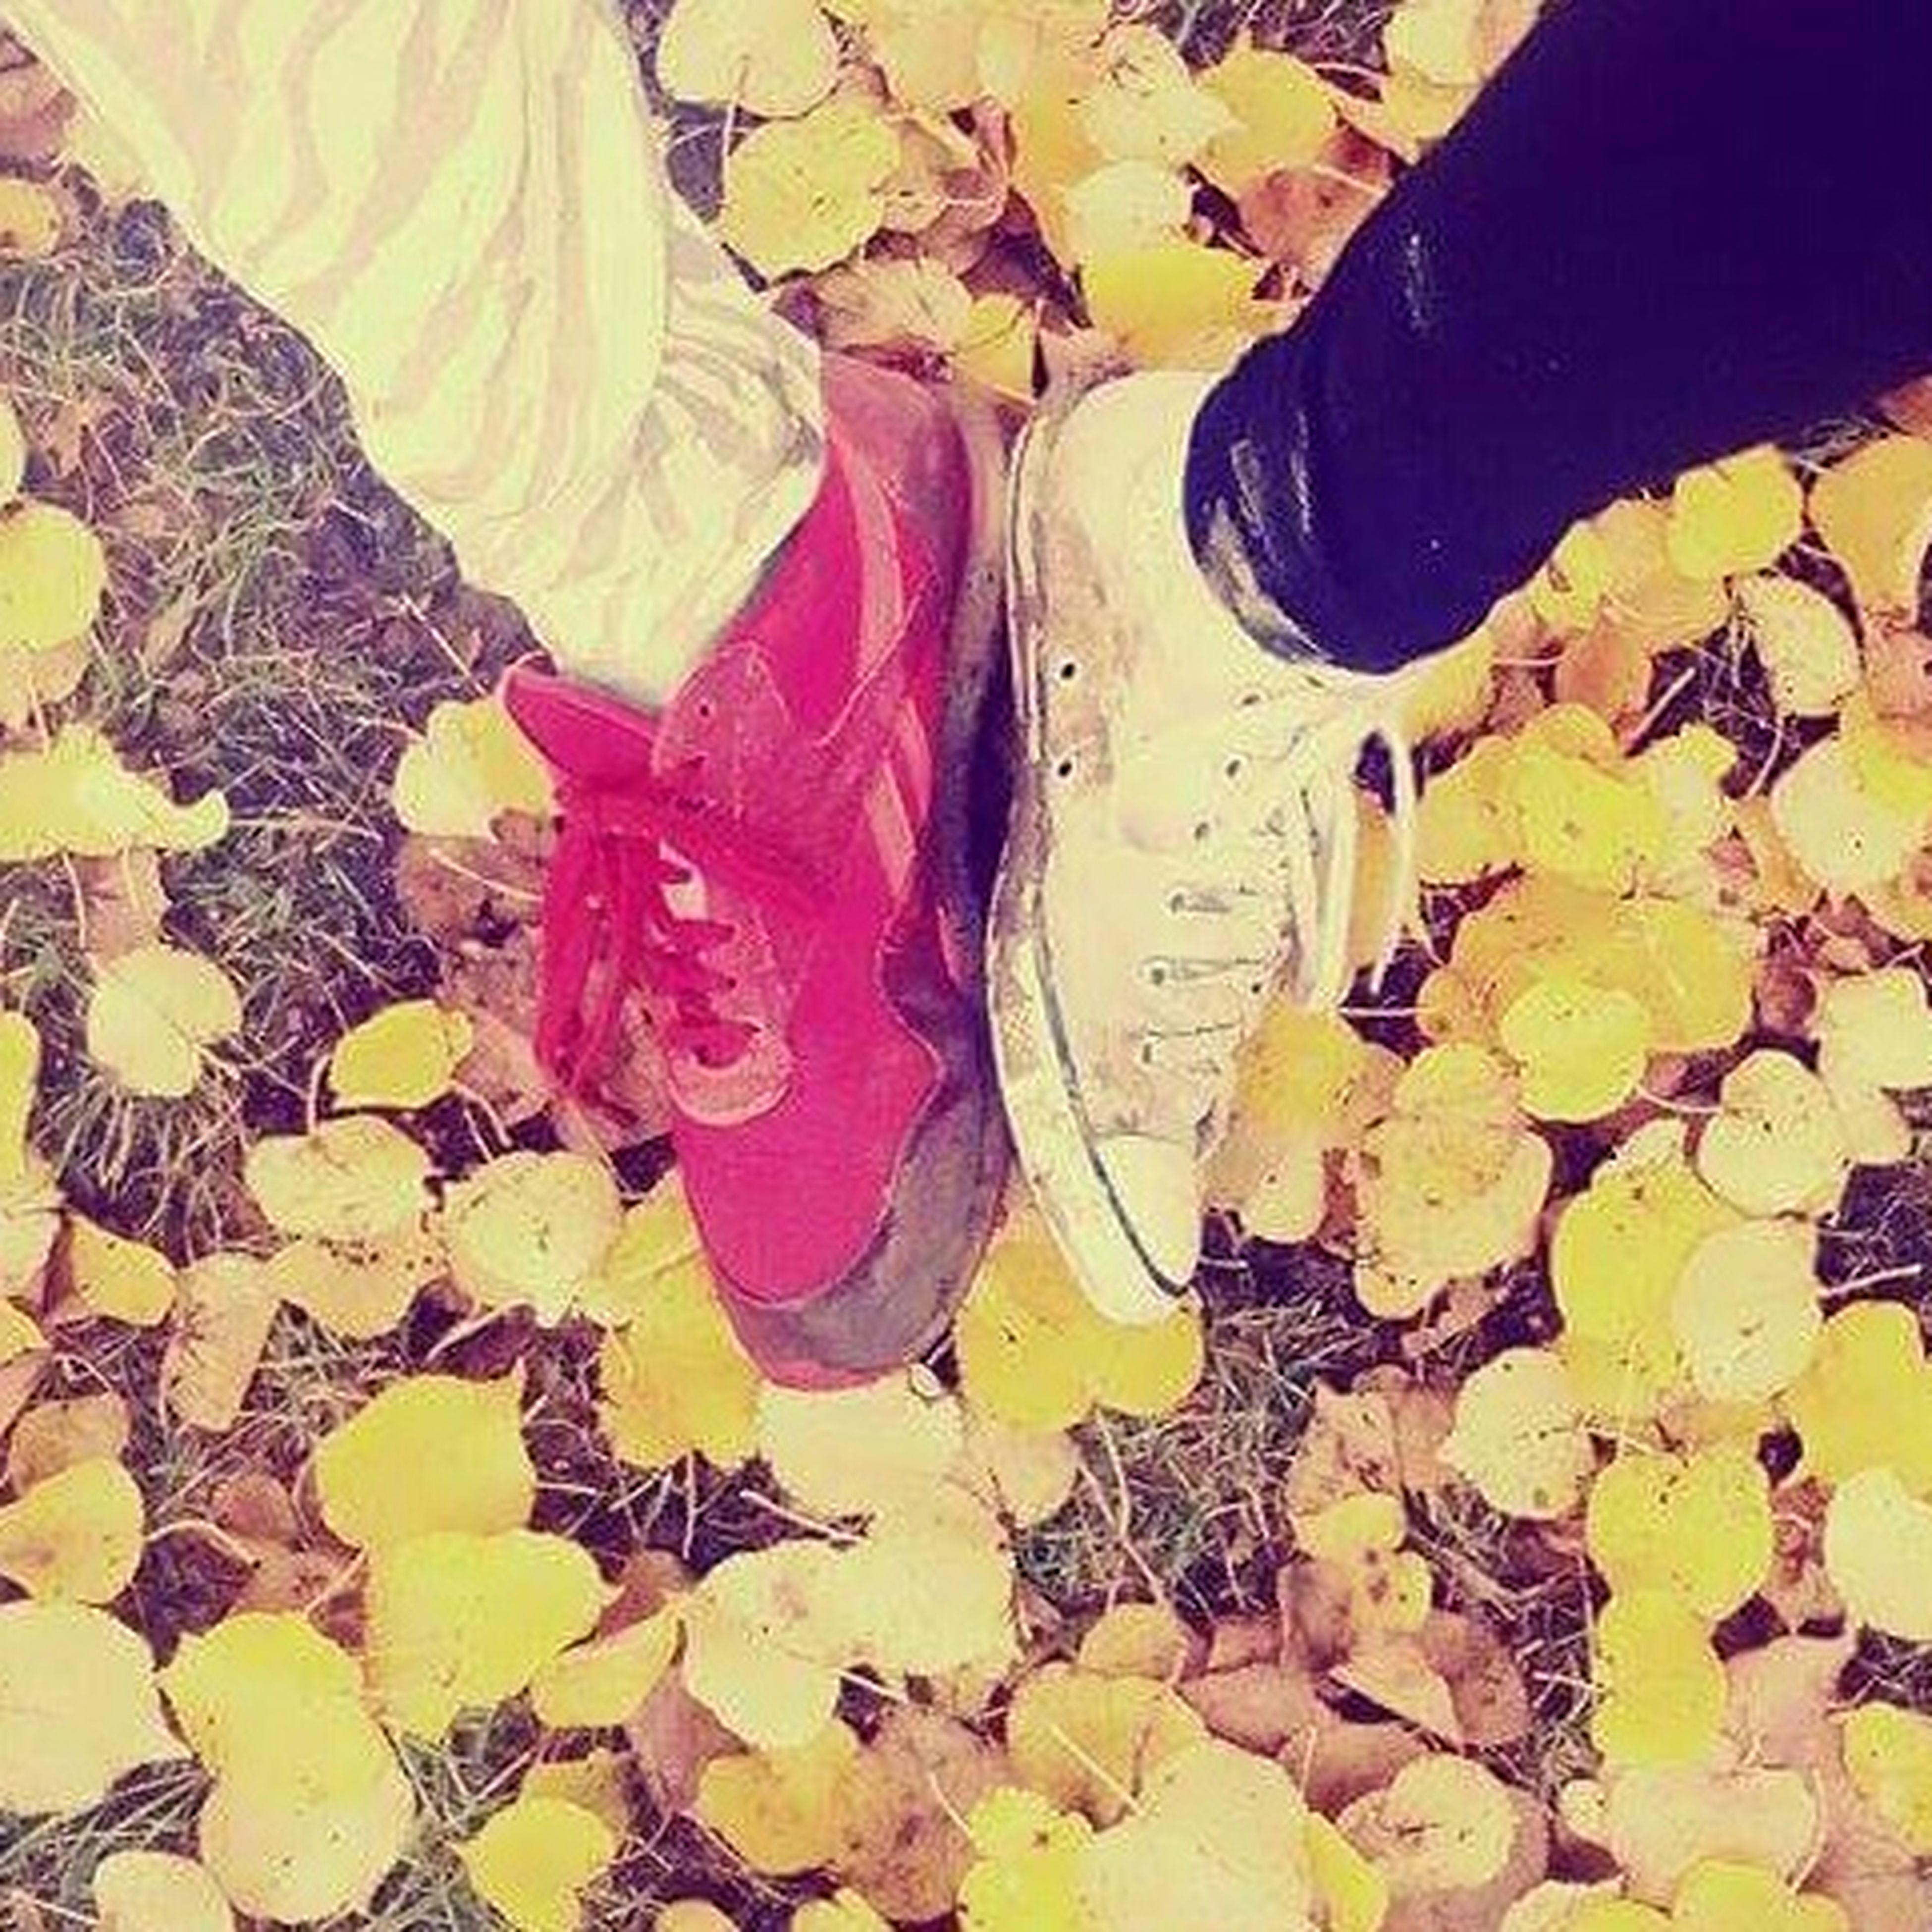 leaf, autumn, low section, change, shoe, high angle view, leaves, person, dry, season, fallen, multi colored, day, close-up, clothing, outdoors, footwear, yellow